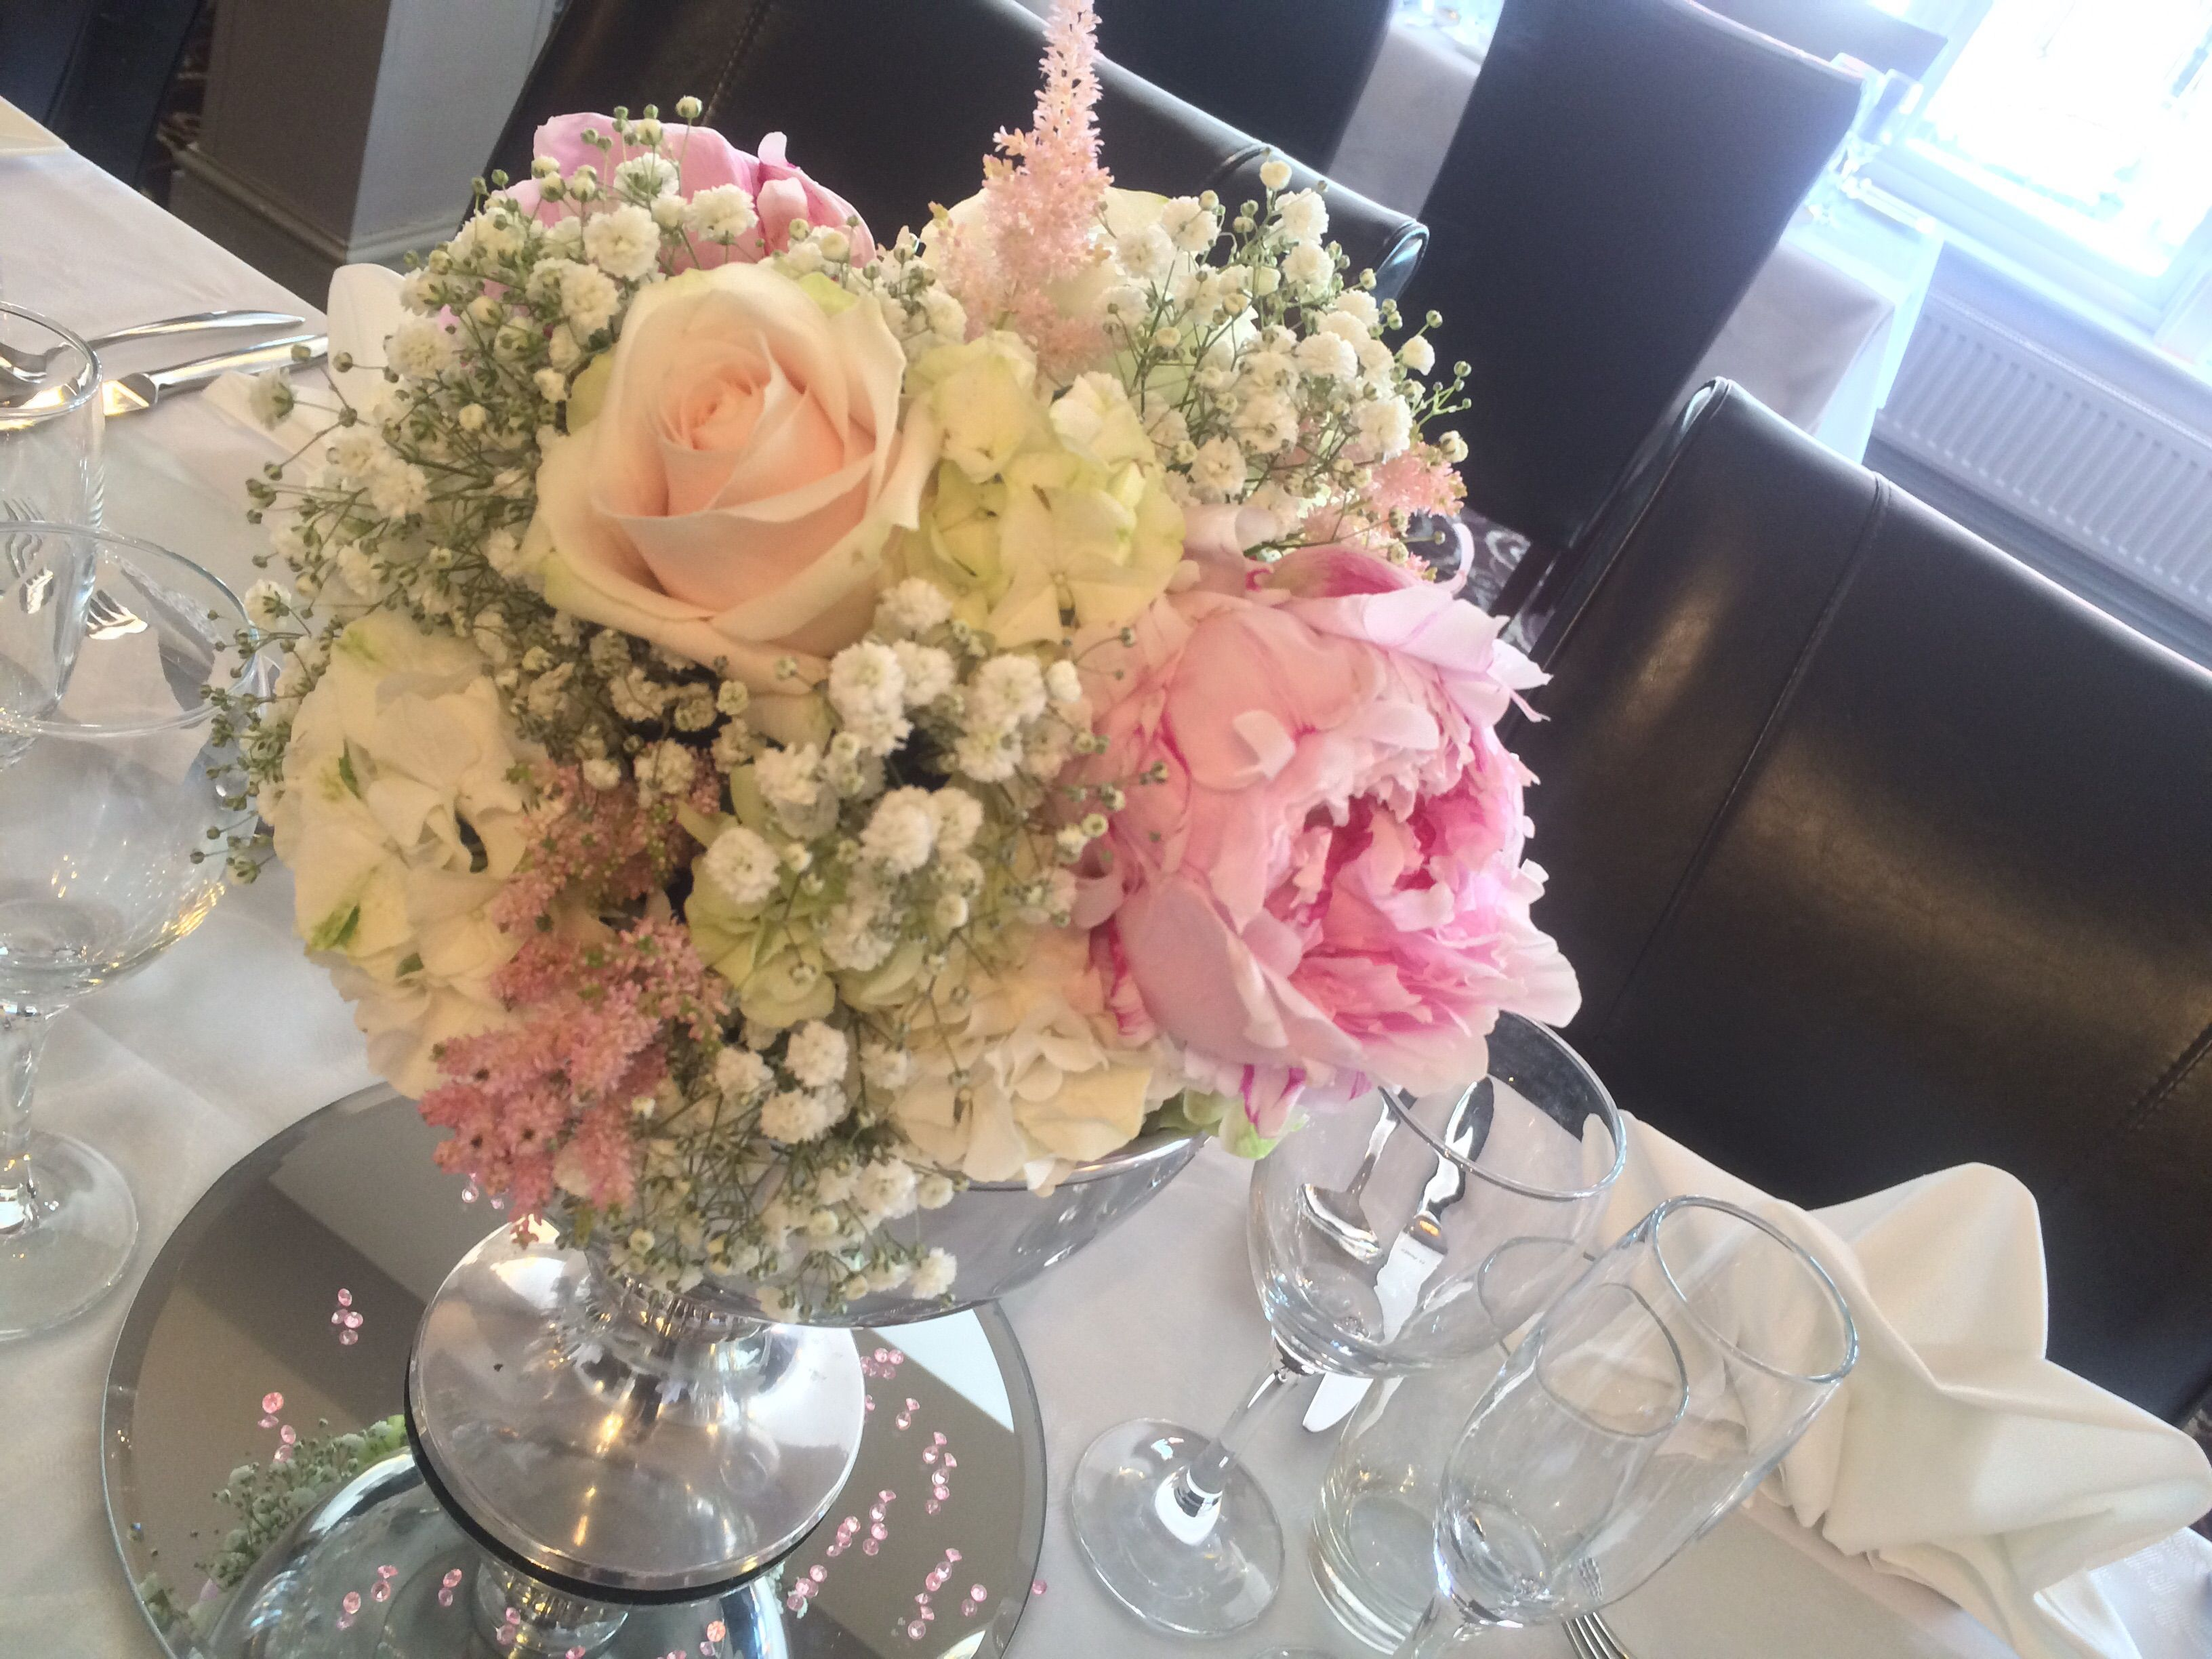 Wedding Flowers Pale Pink Peonies Sweet Avalanche Blush Roses Mini Spray